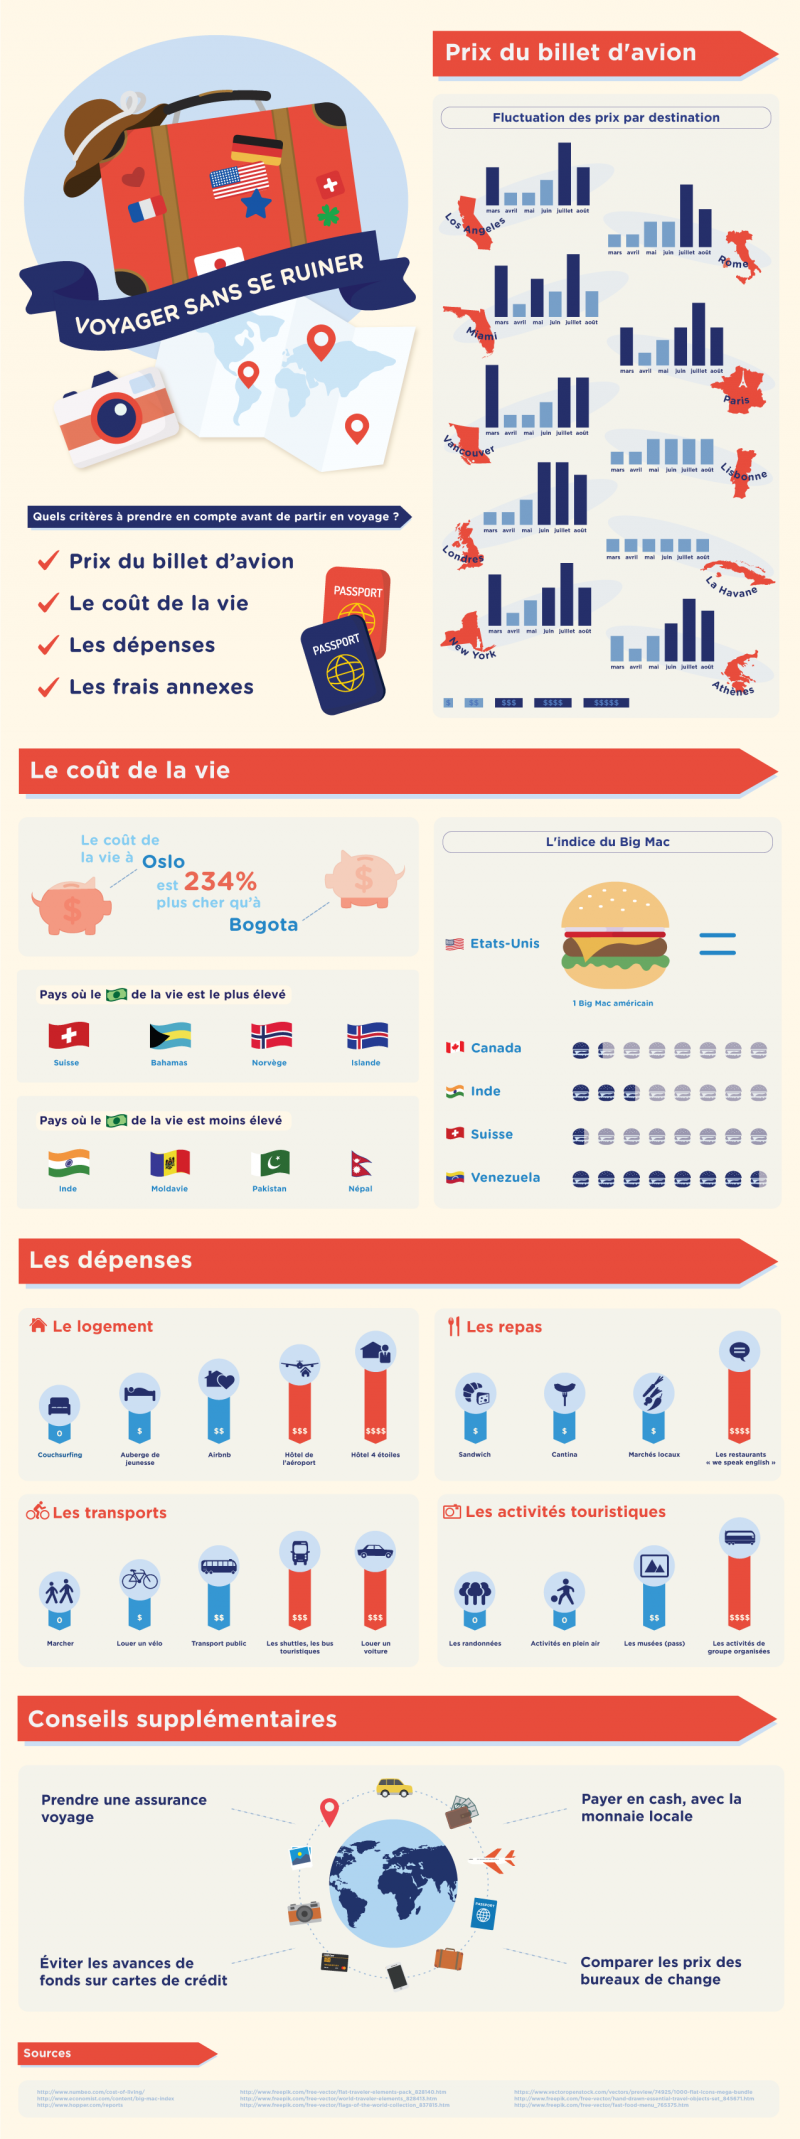 infographic-new-01-png.png (large - 800 x 3000 free)